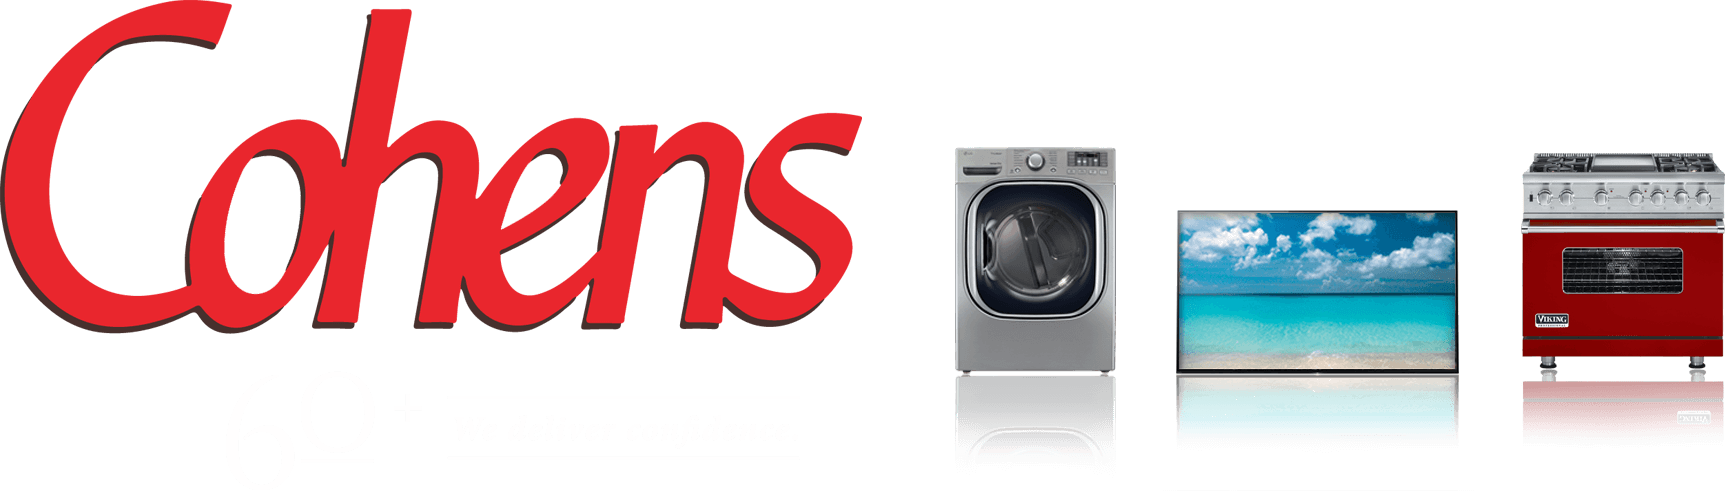 Electronics, Appliances, Furniture, Grills, Home Security in